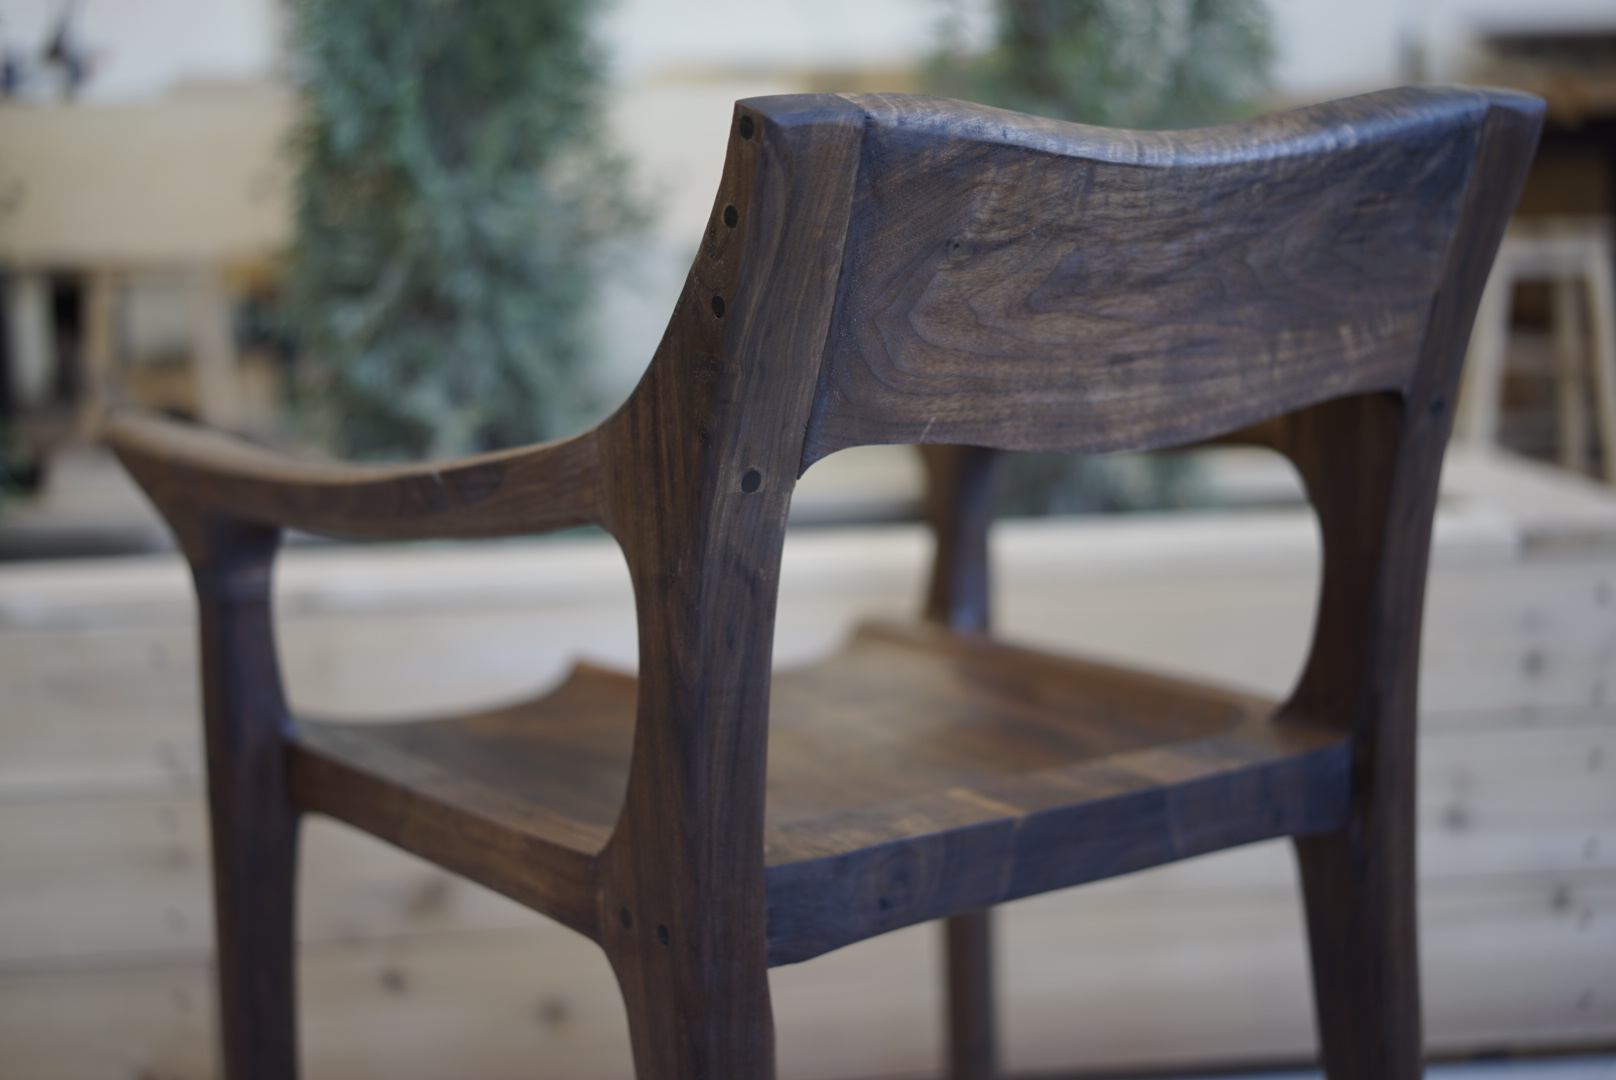 chair finsihed 2